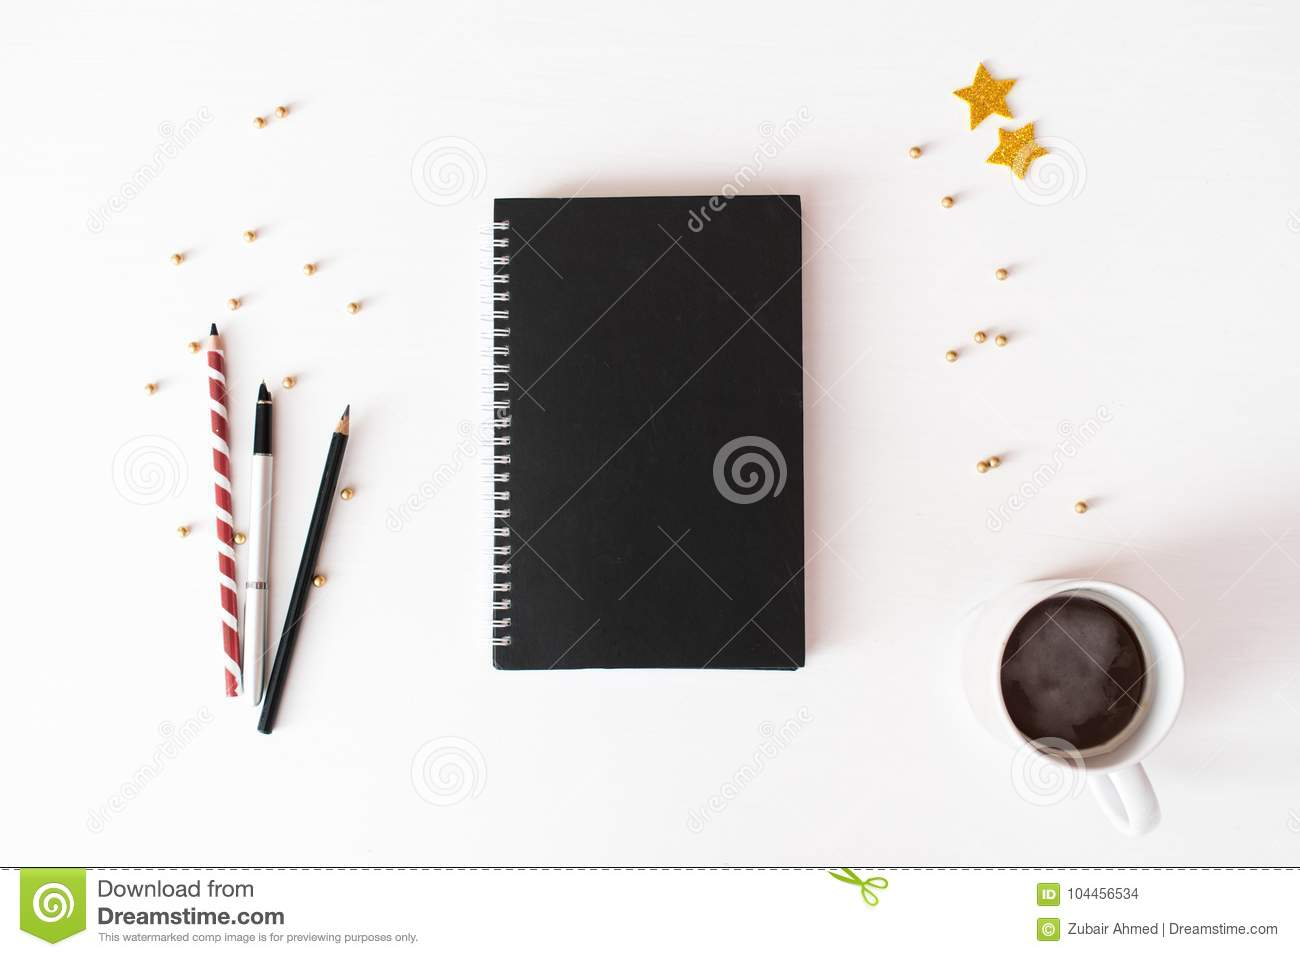 diary post card flyer christmas composition background wallpaper